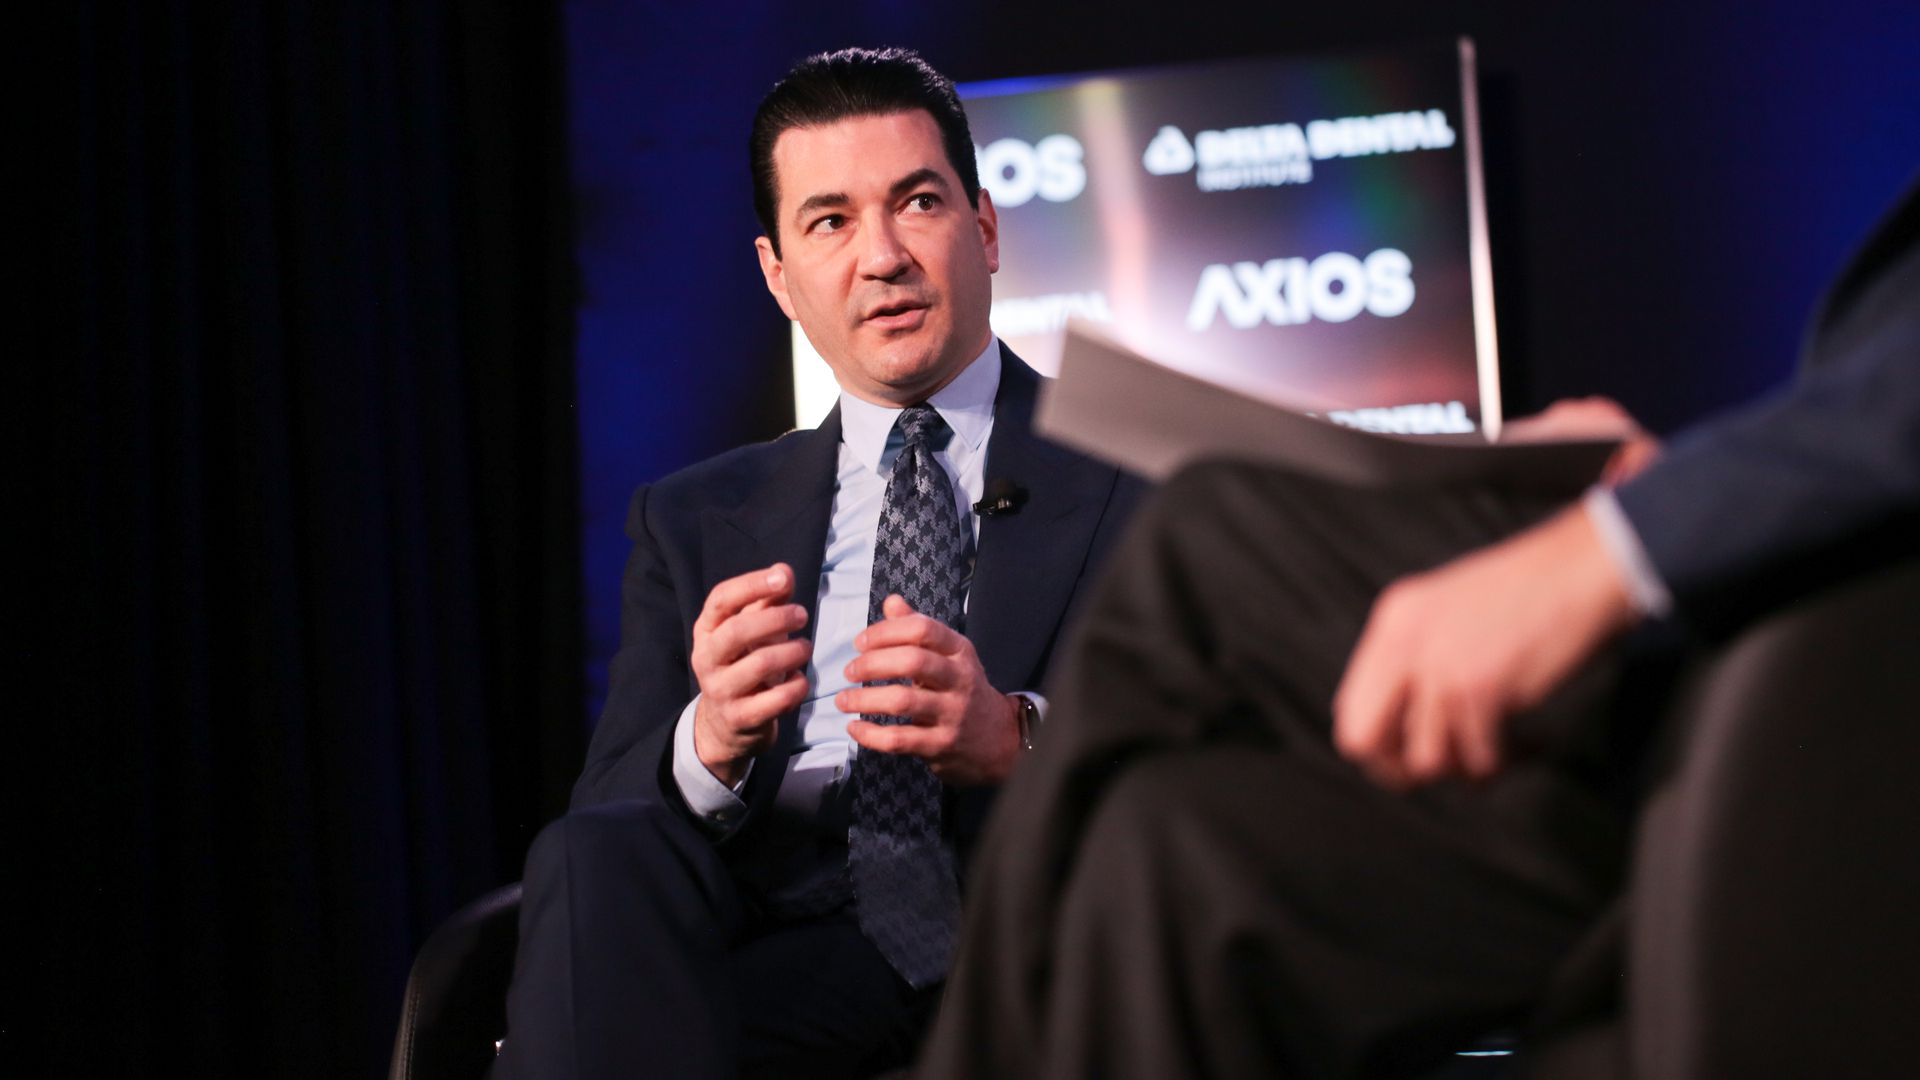 Dr. Scott Gottlieb on the Axios stage.